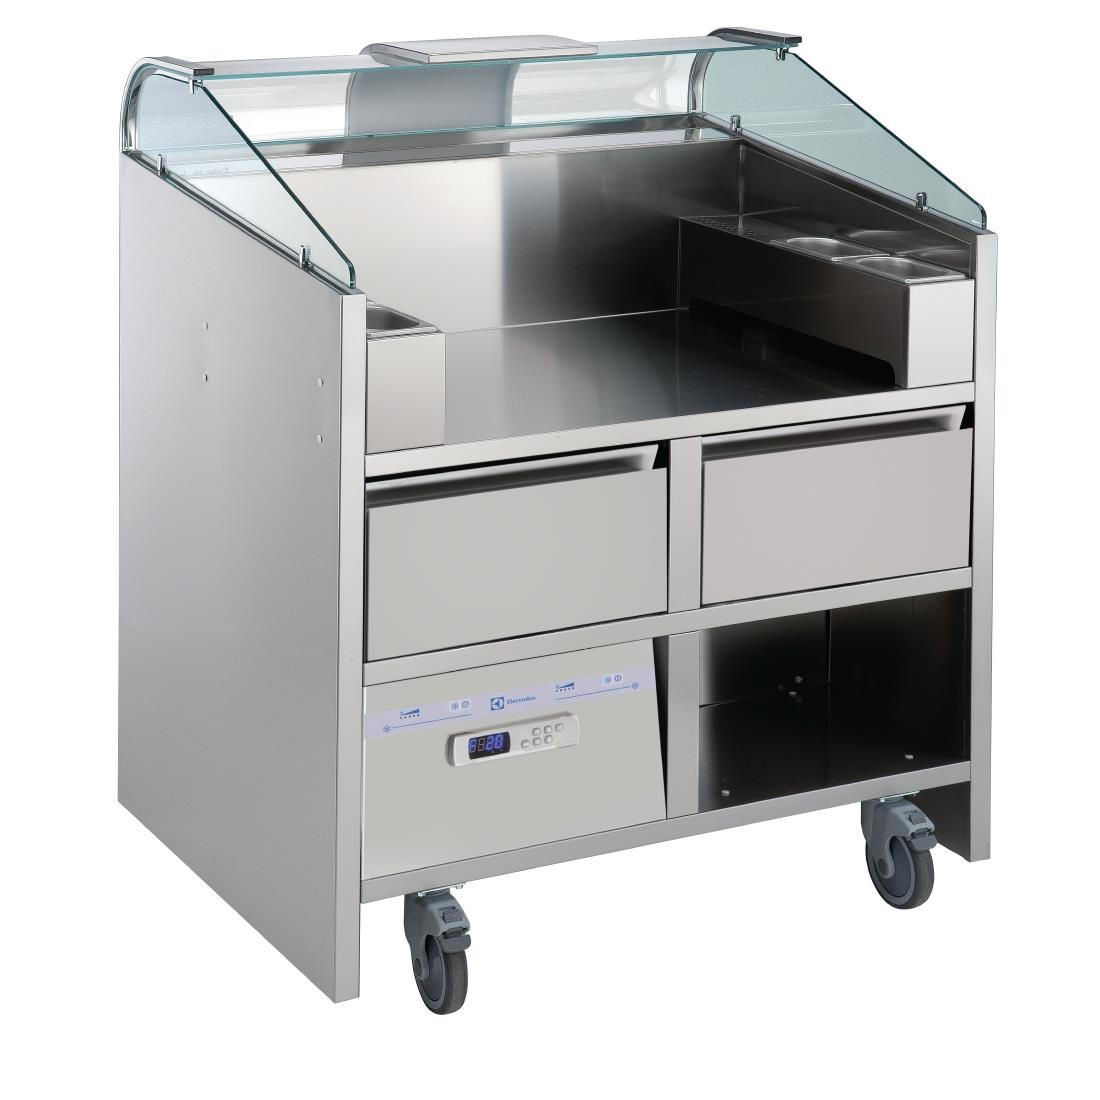 Image of Electrolux 2 Point Mobile Unit with Refrigerated Drawers NERLP2G